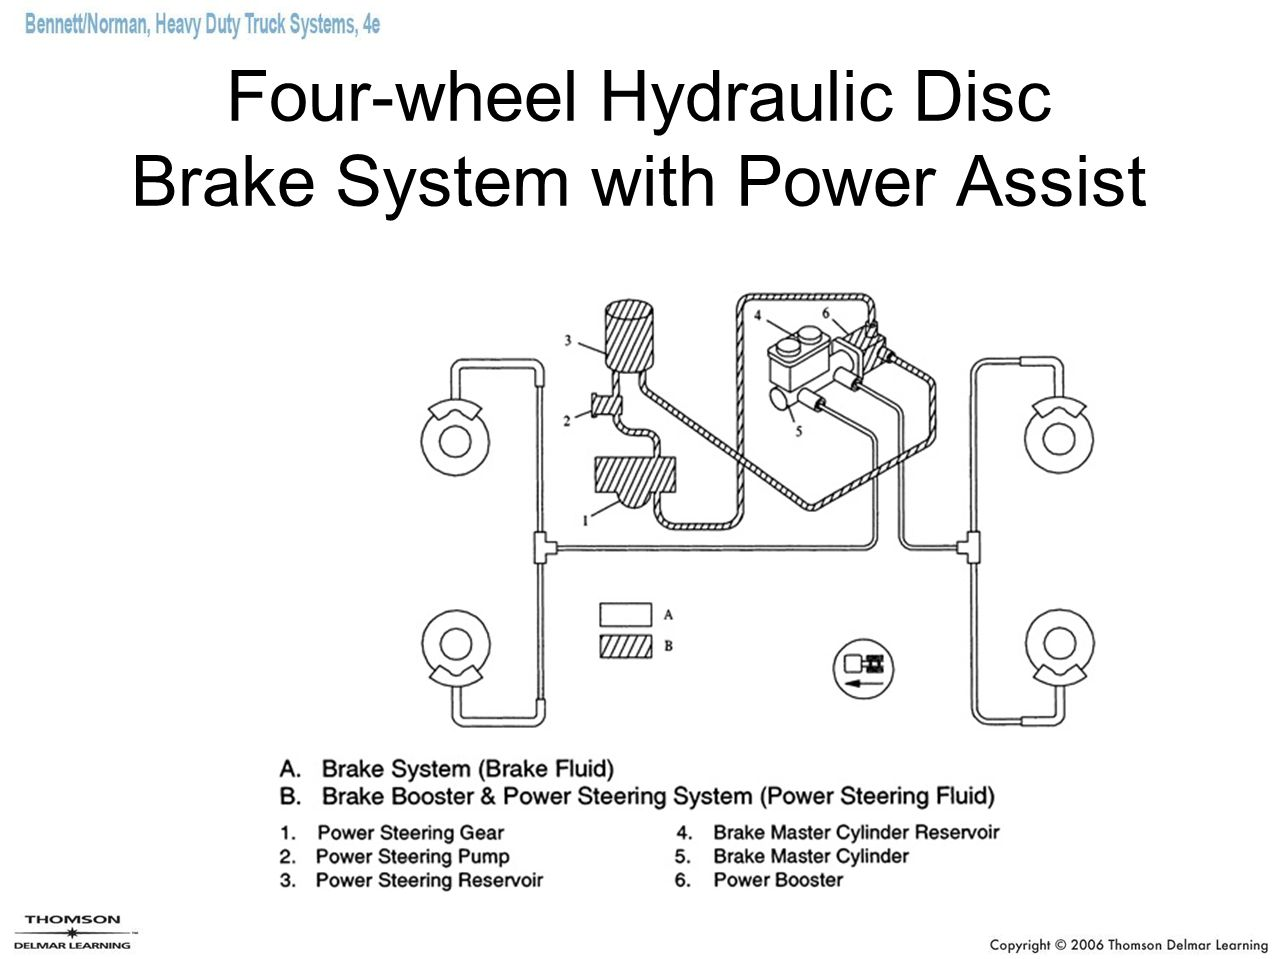 Hydraulic Brakes and Air-Over-Hydraulic Brake Systems - ppt video